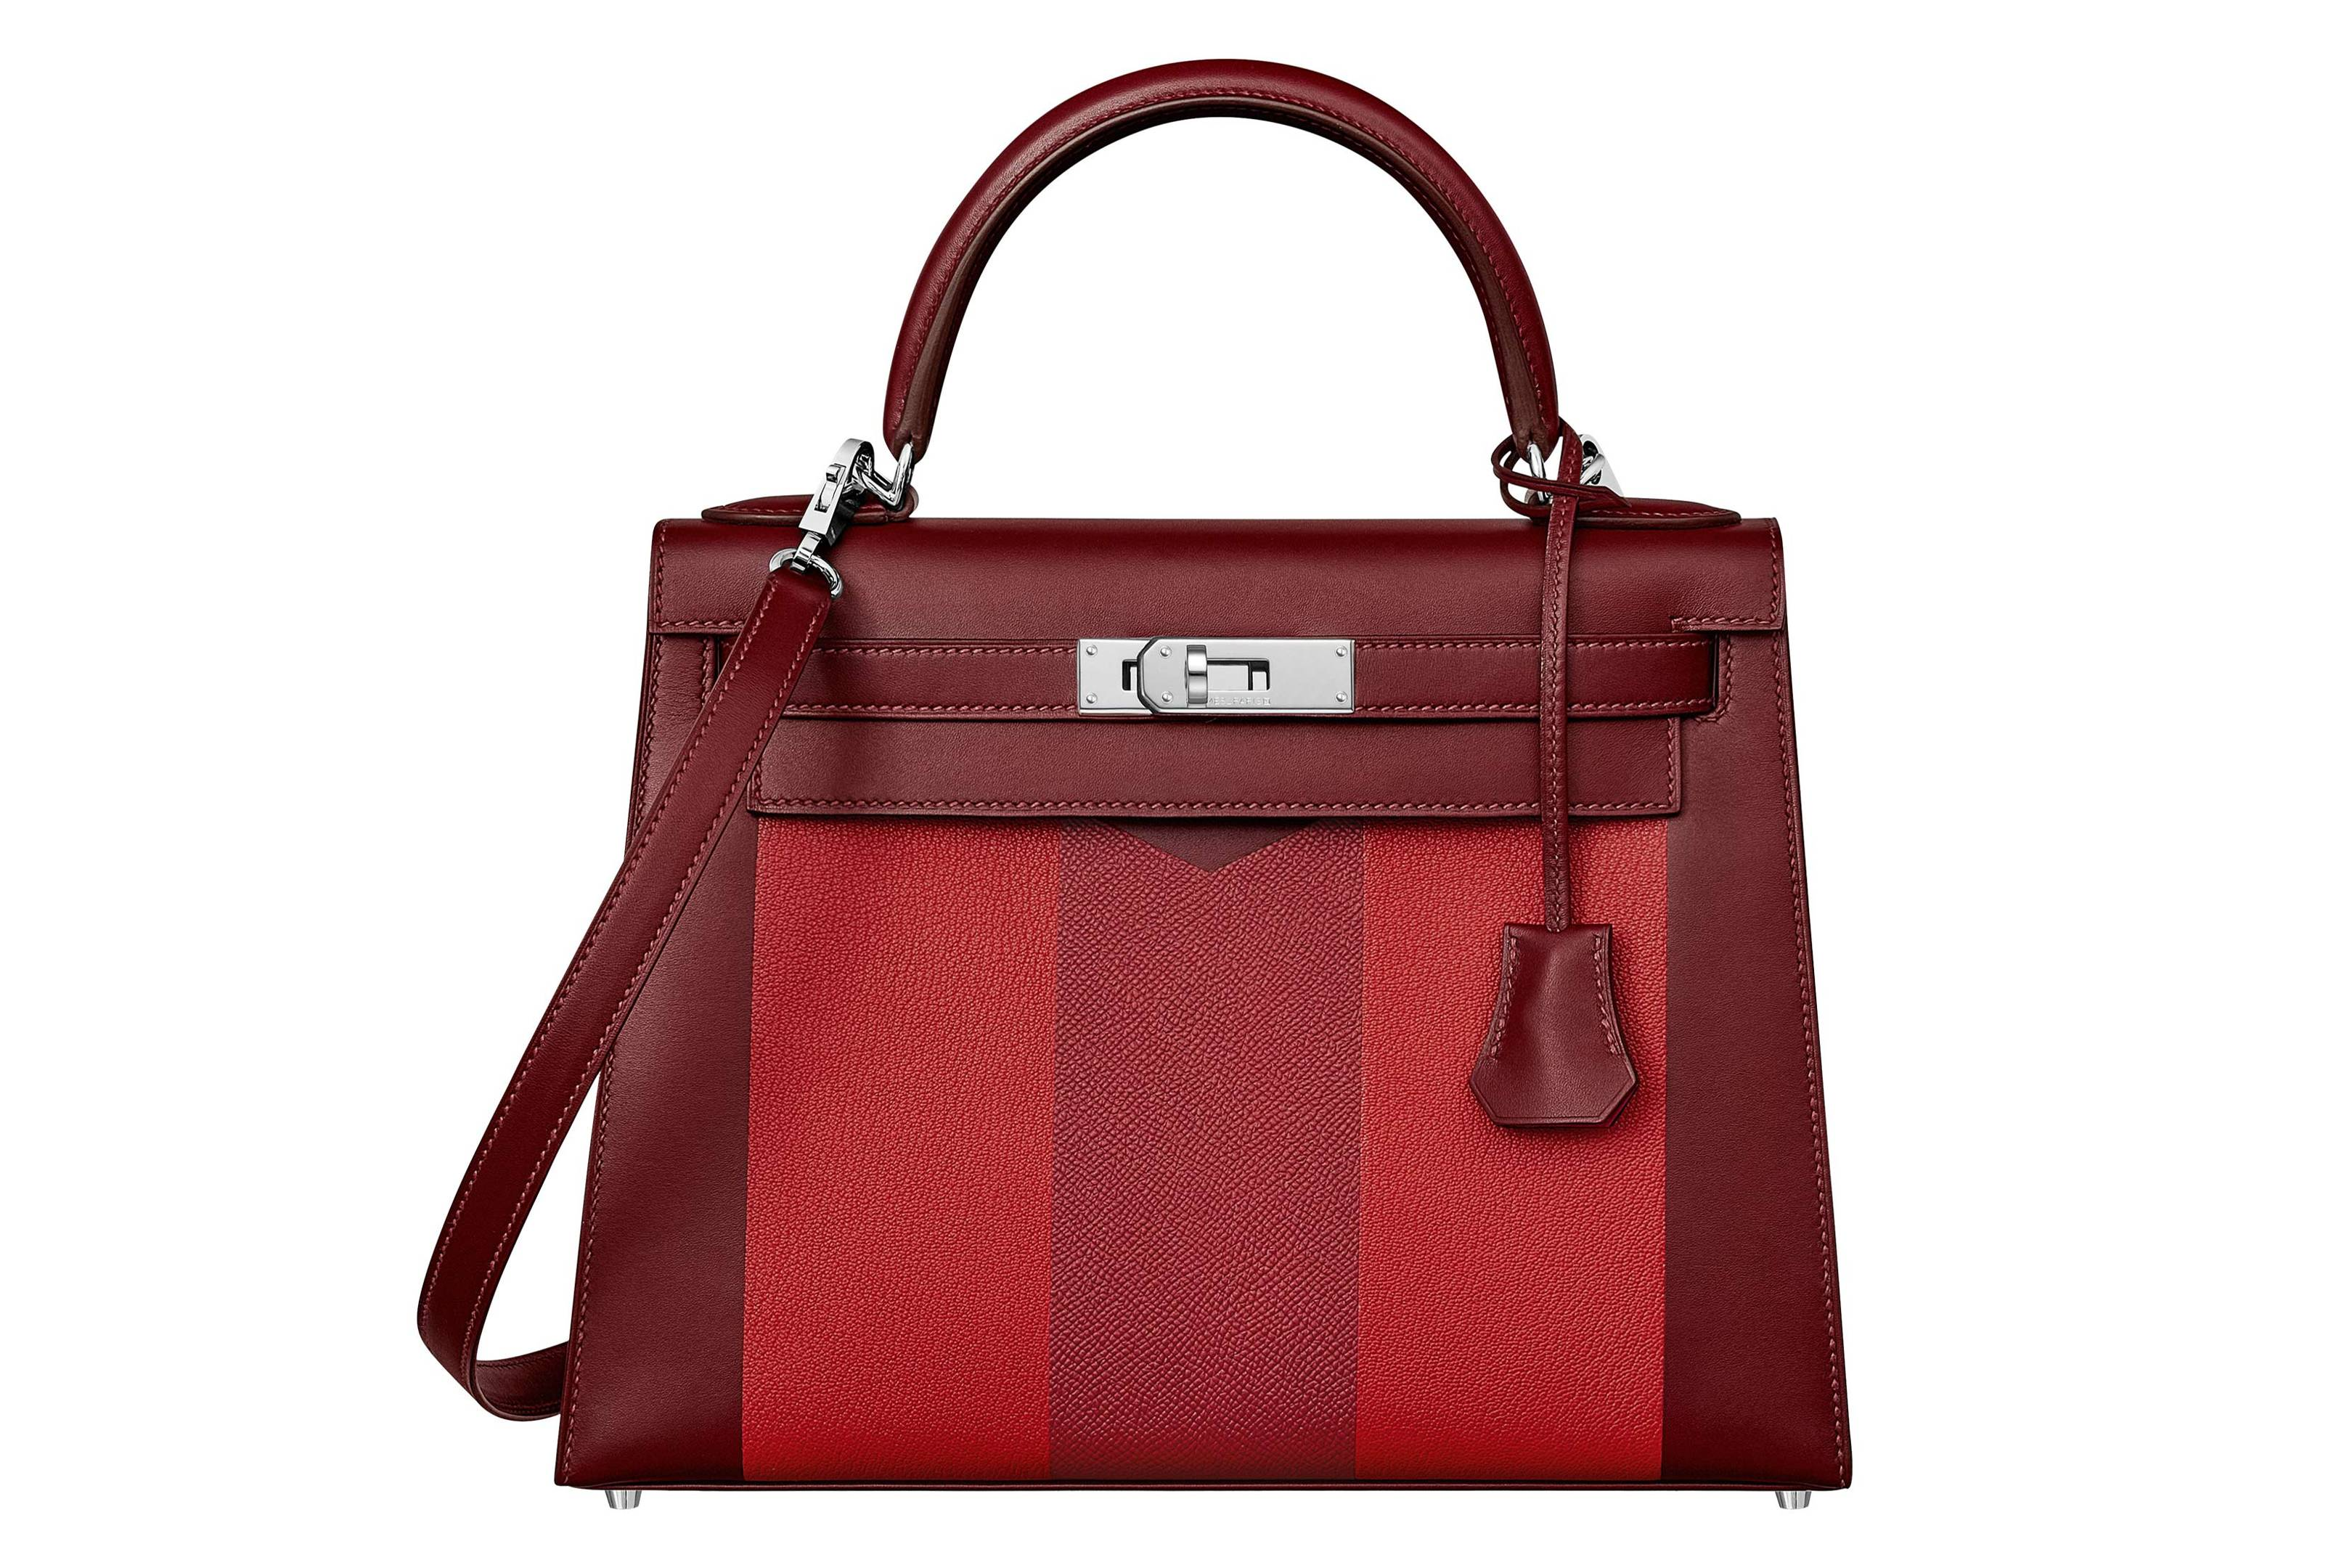 98e9ecaee90b The Hermès Bag - The Most Famous Styles